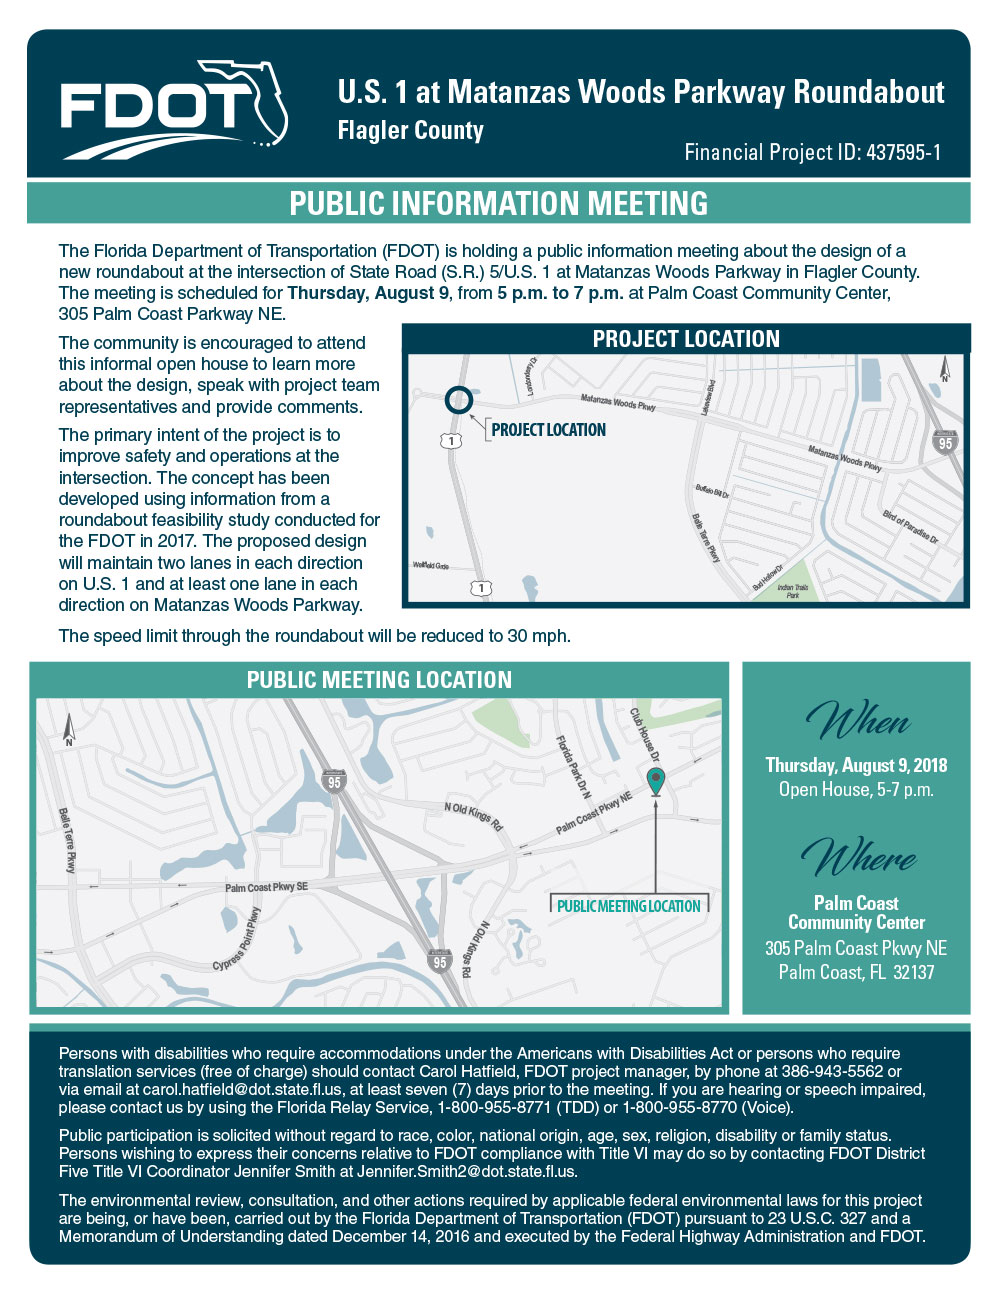 US1_MatanzasWoodsPkwy_Meeting_2pg-1